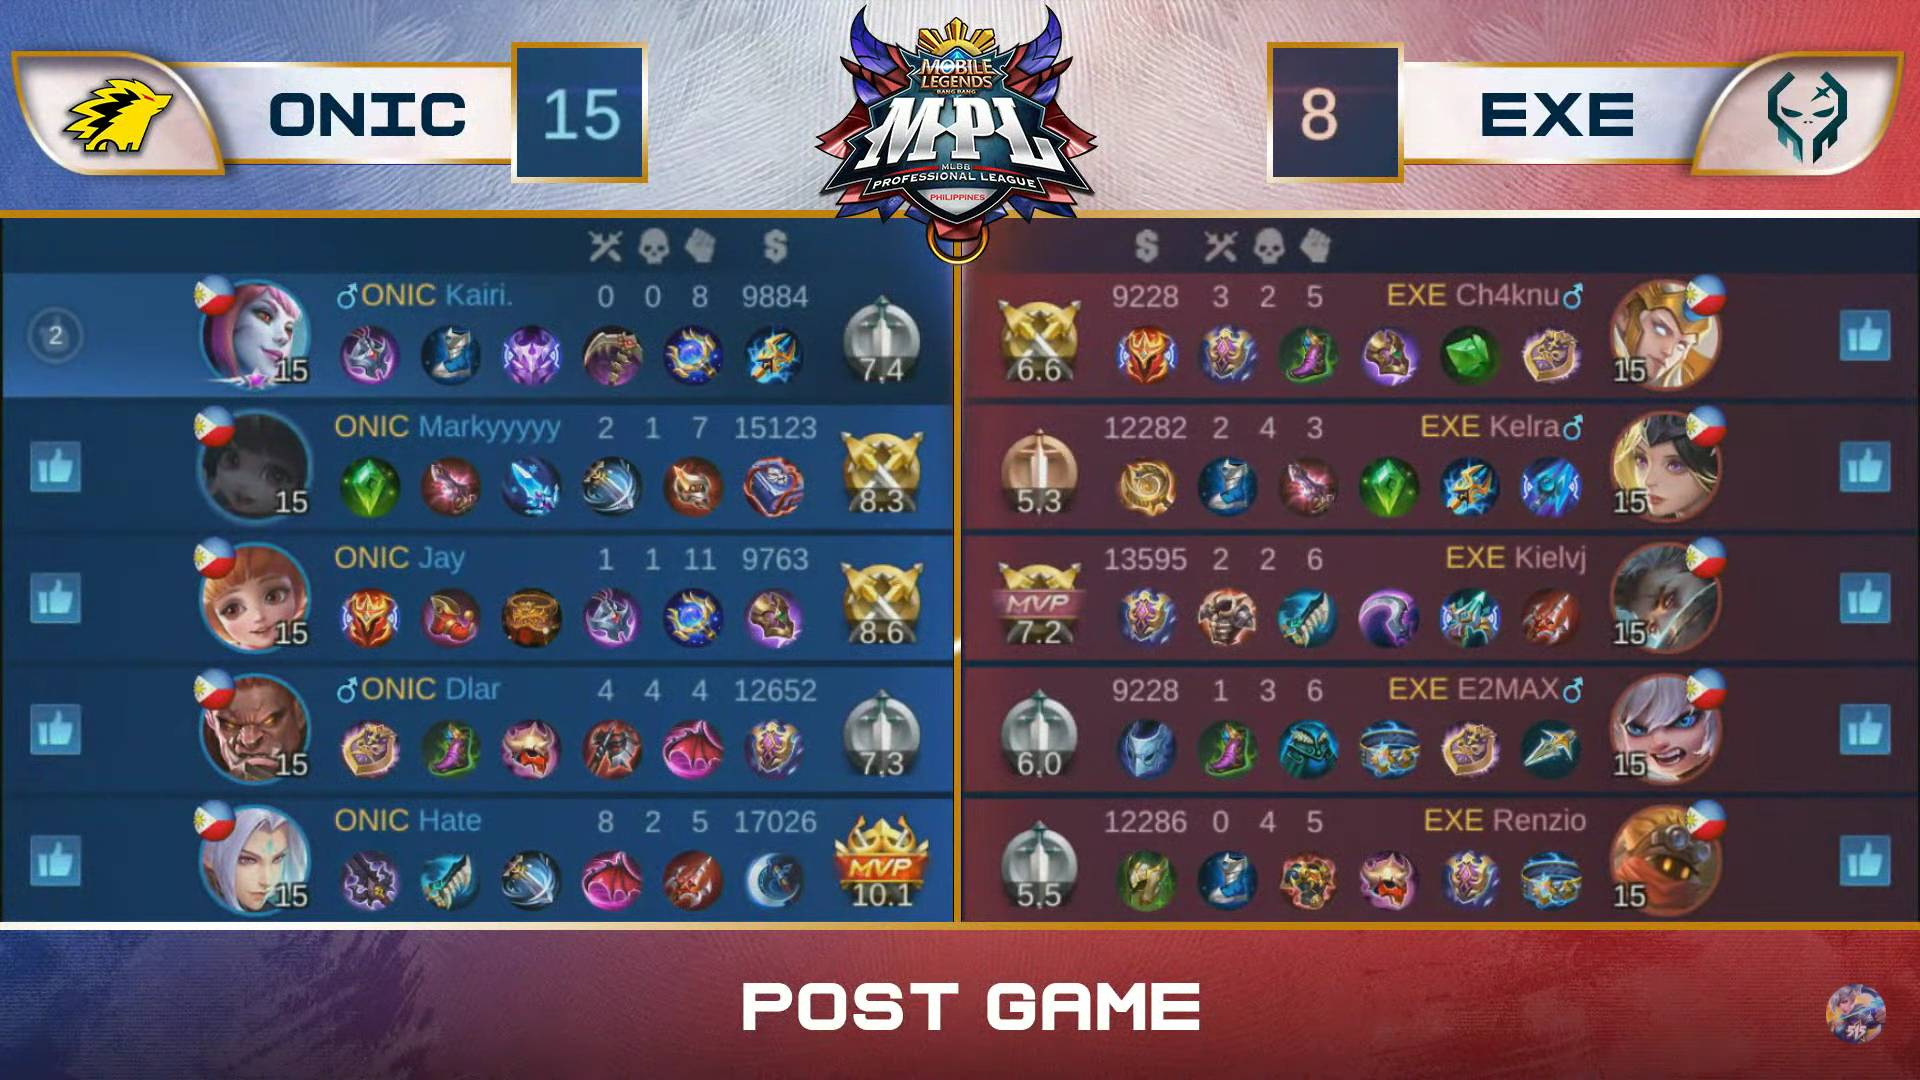 MPL-PH-Season-7-ONIC-def-Execration-Game-1 Hate deals Execration heartbreak as ONIC rises to third in MPL PH ESports Mobile Legends MPL-PH News  - philippine sports news